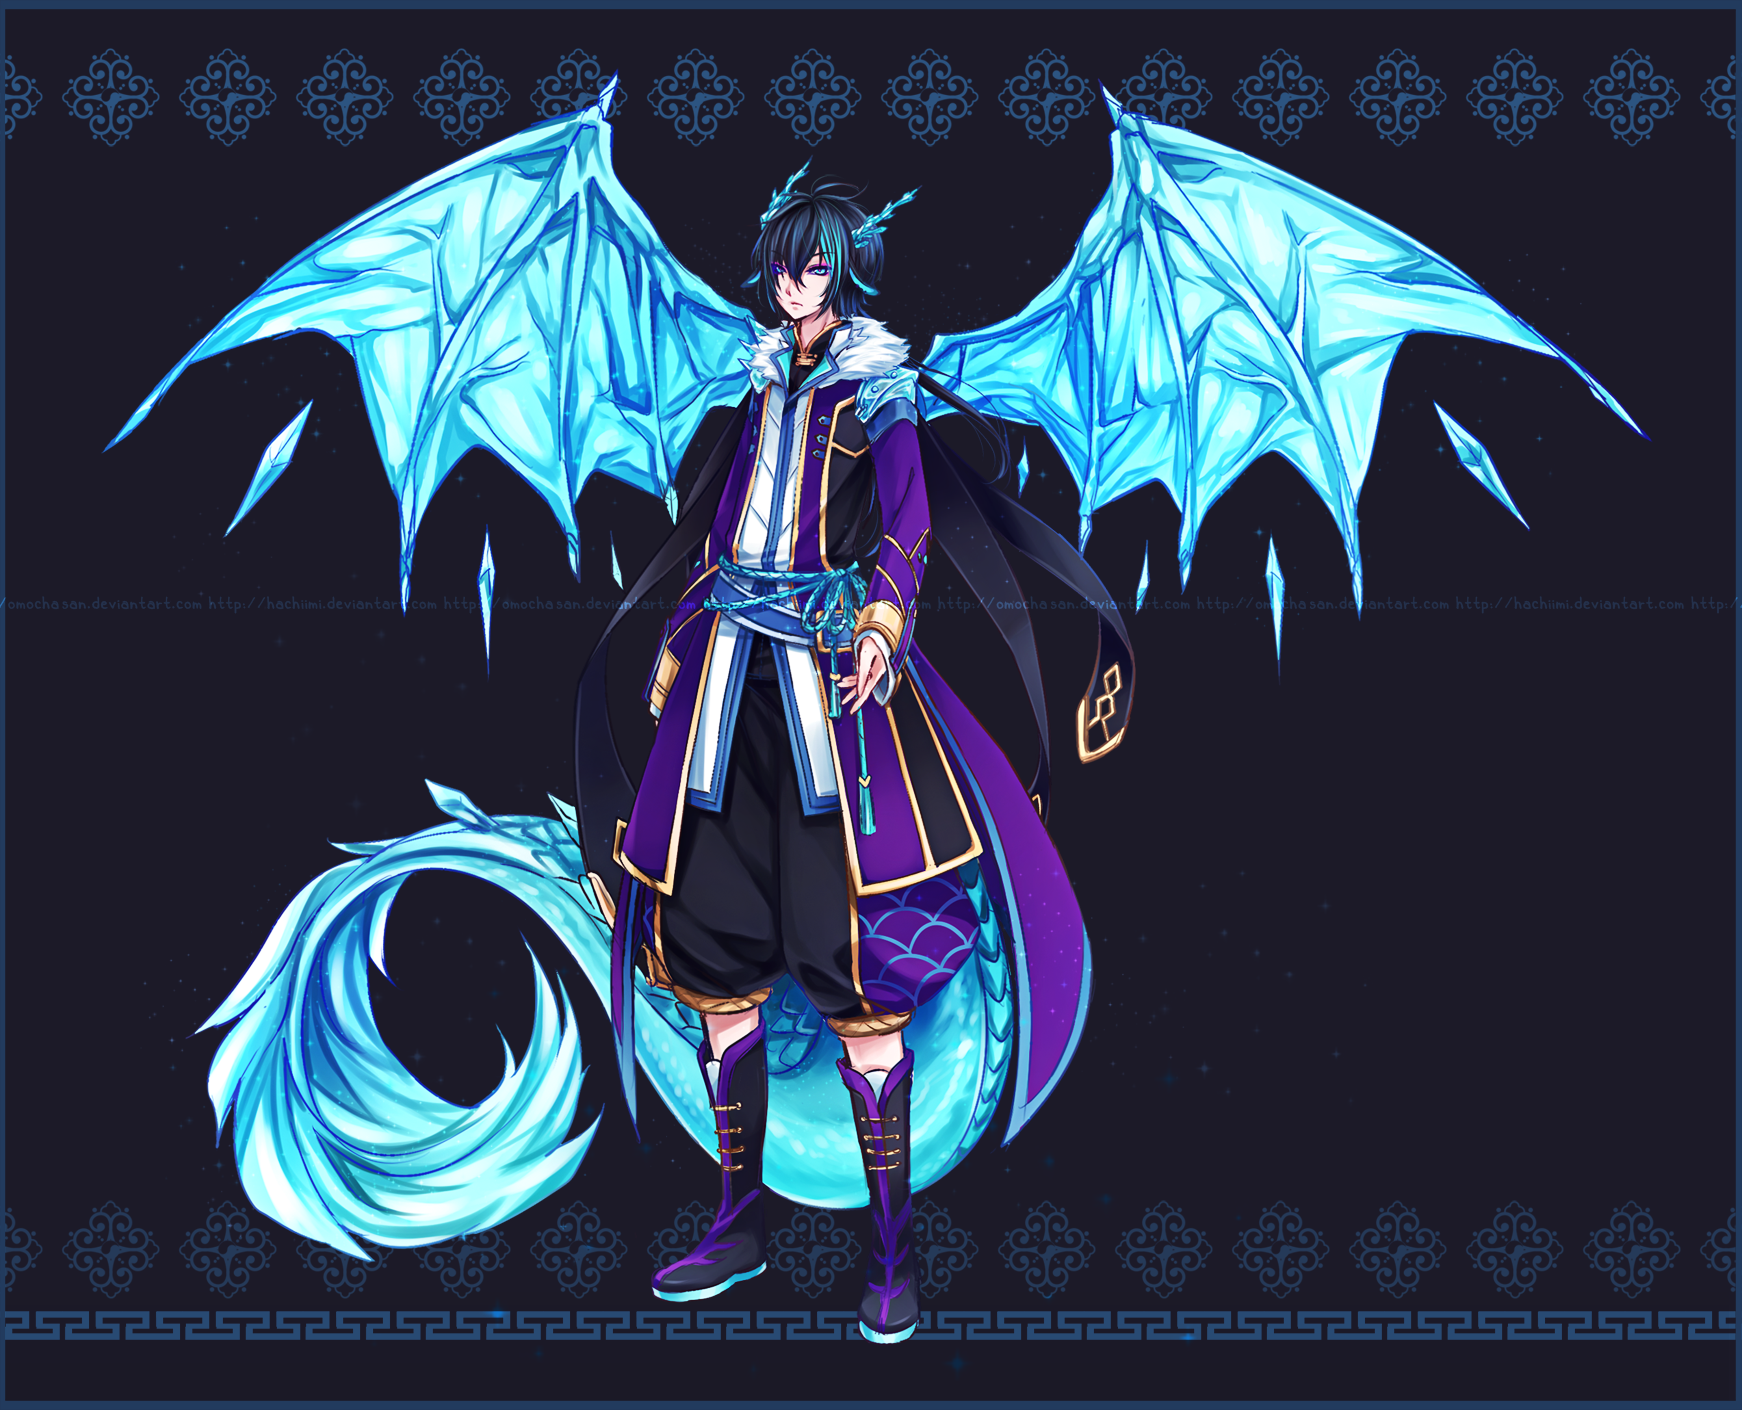 Chixomo adopt bonus 06 by zenithomocha on deviantart - Anime boy dragon ...